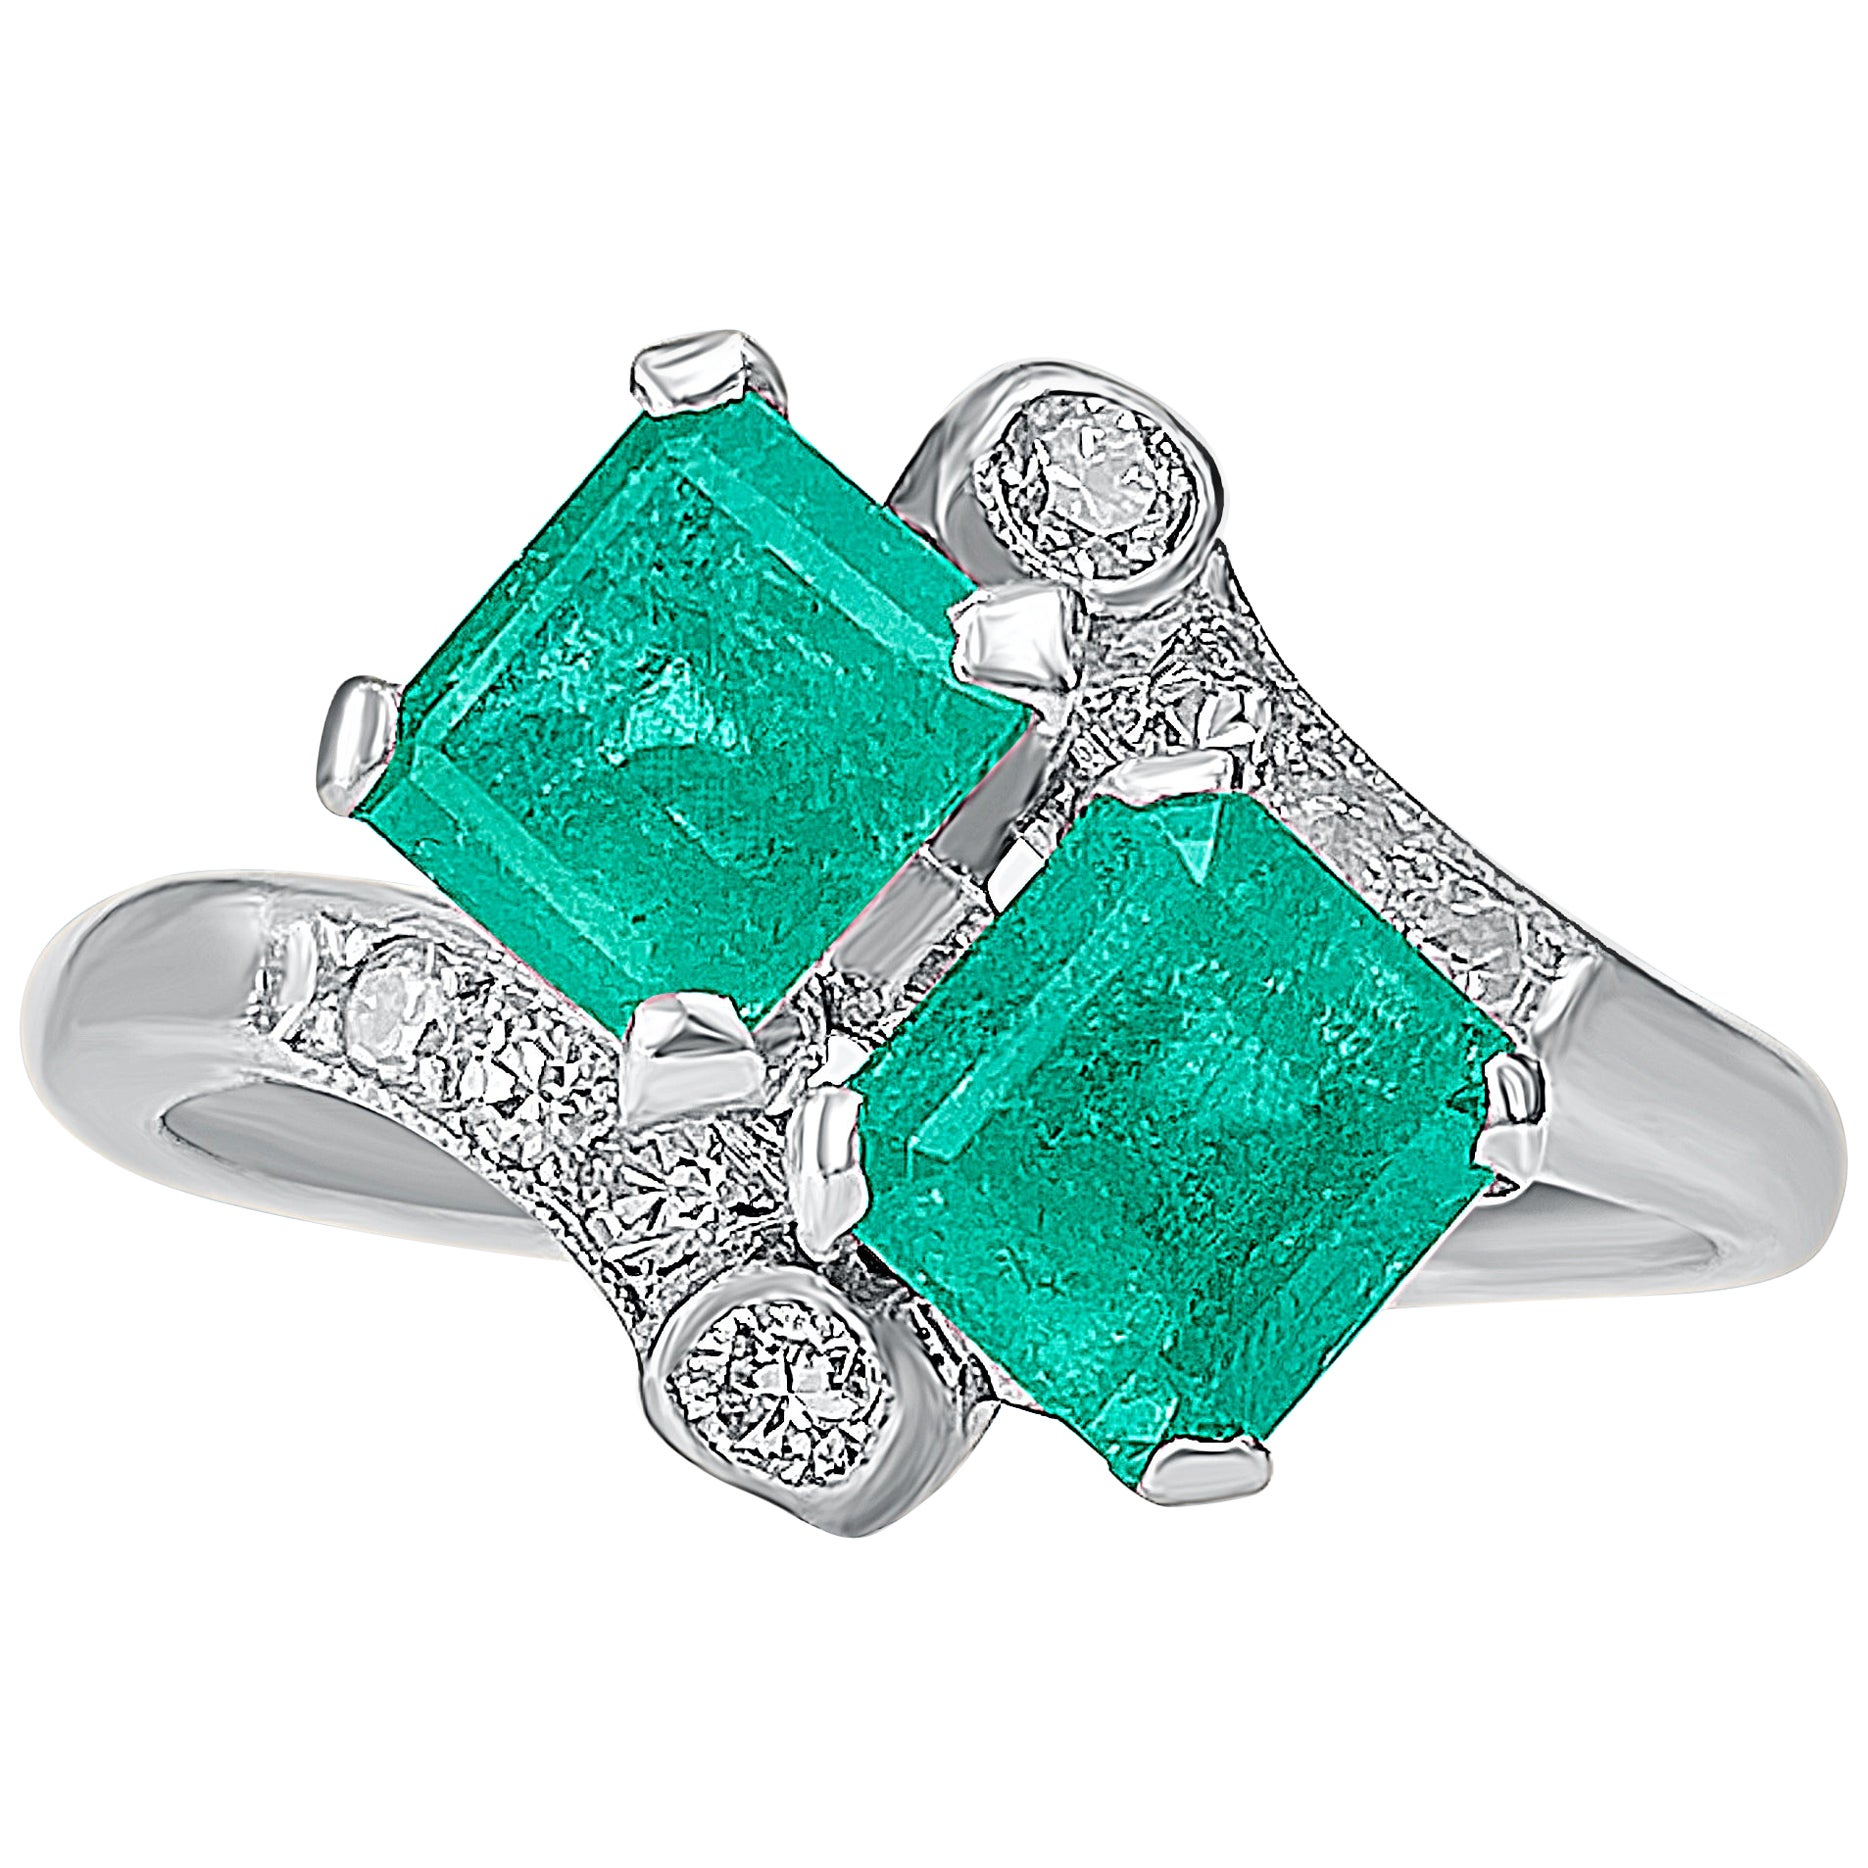 "2.16 Carat Colombian Emerald, Diamond and Platinum ""Toi Et Moi"" Ring"